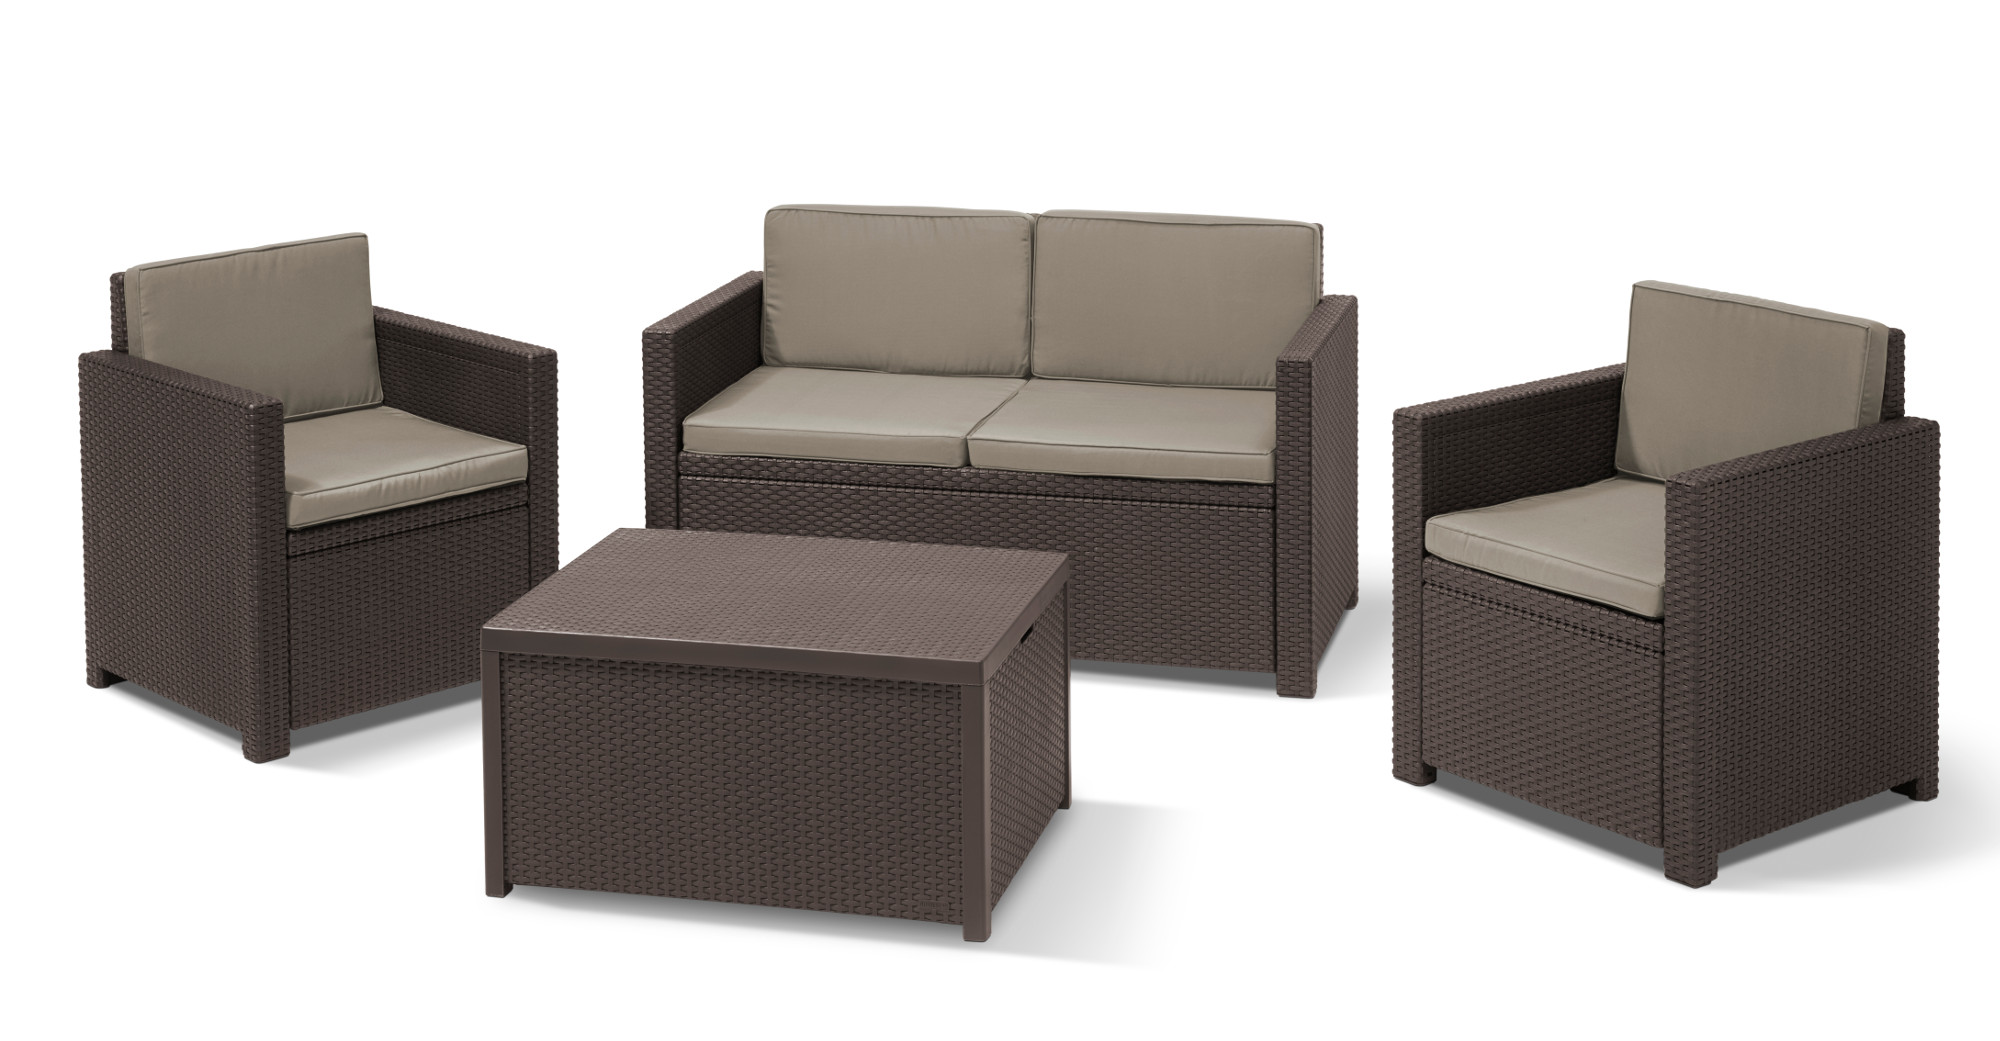 Salon De Jardin Allibert Lounge Set Allibert Lounge Set Monaco Allibert Monaco Lounge Set Ab